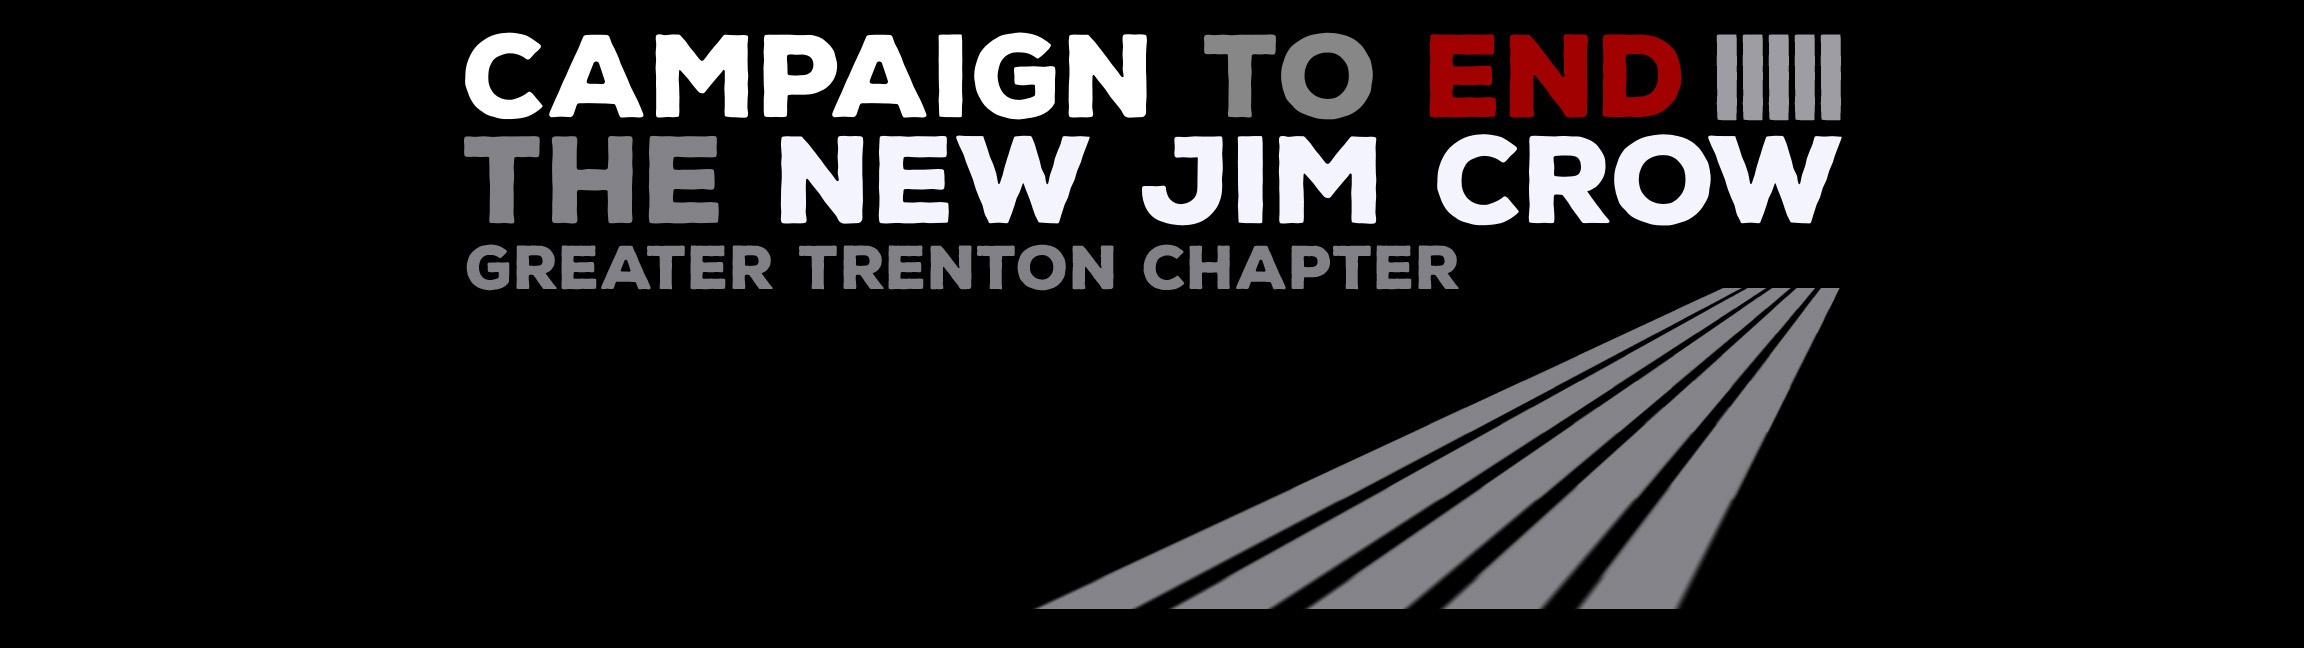 The Campaign to End the New Jim Crow - Trenton/Princeton Chapter